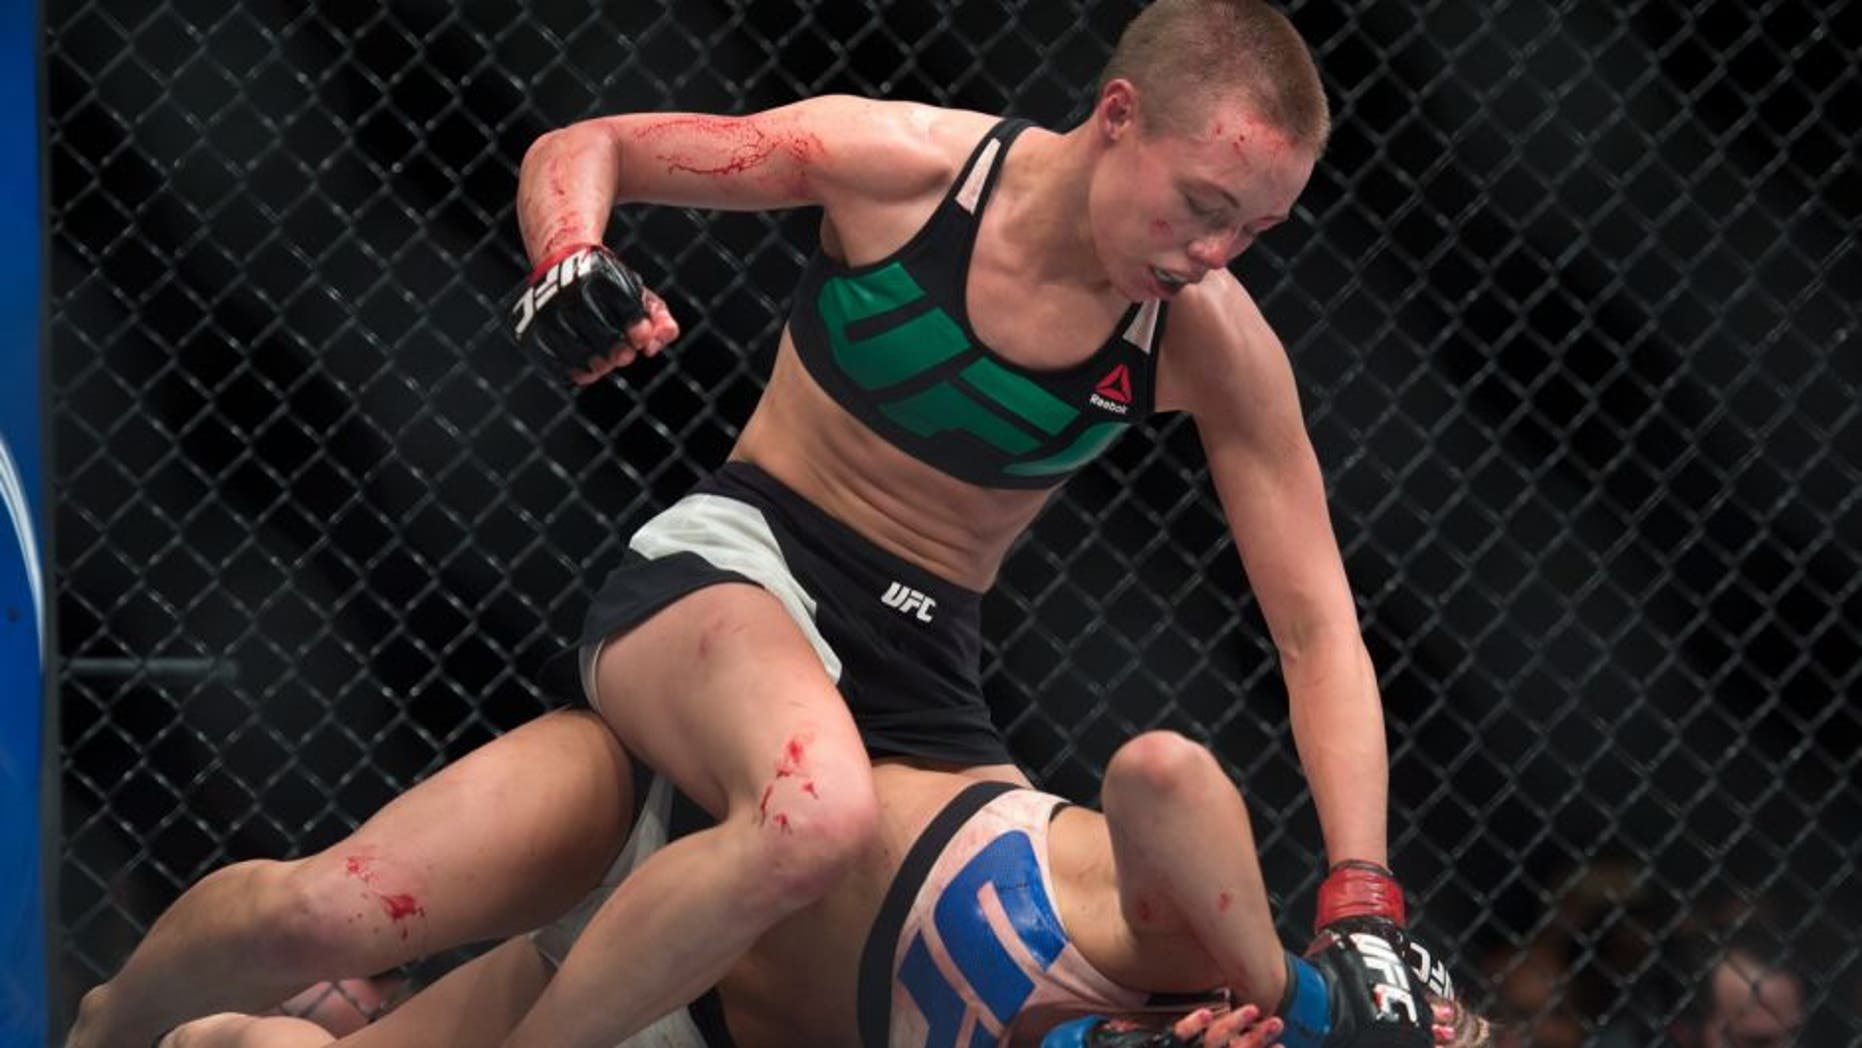 LAS VEGAS, NEVADA - DECEMBER 10: (Top) Rose Namajunas punches Paige VanZant in their women's strawweight bout during the UFC Fight Night event at The Chelsea at the Cosmopolitan of Las Vegas on December 10, 2015 in Las Vegas, Nevada. (Photo by Brandon Magnus/Zuffa LLC/Zuffa LLC via Getty Images)